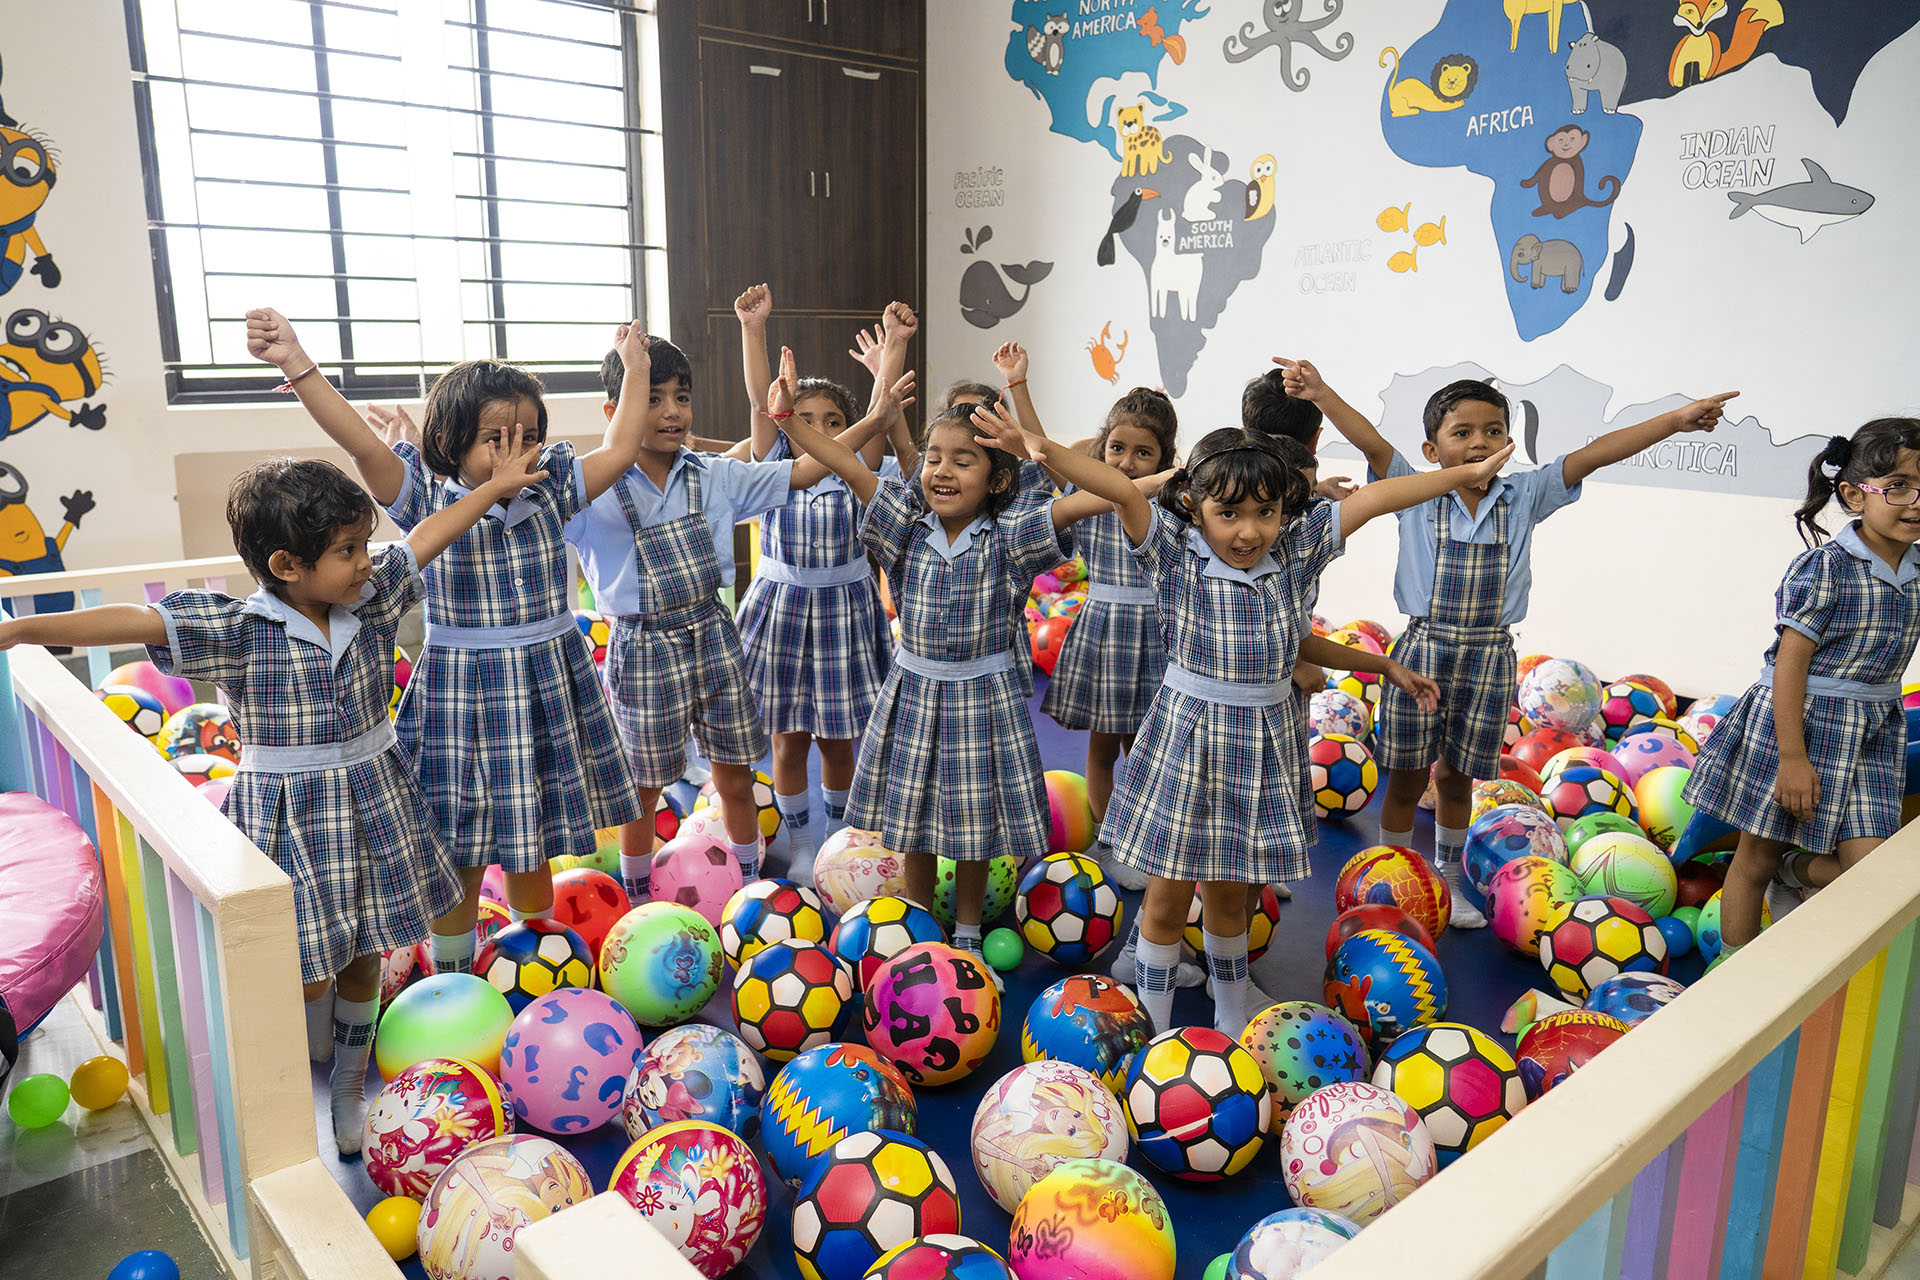 best cbse schools in bhopal, leading cbse schools in bhopal, top cbse schools in bhopal